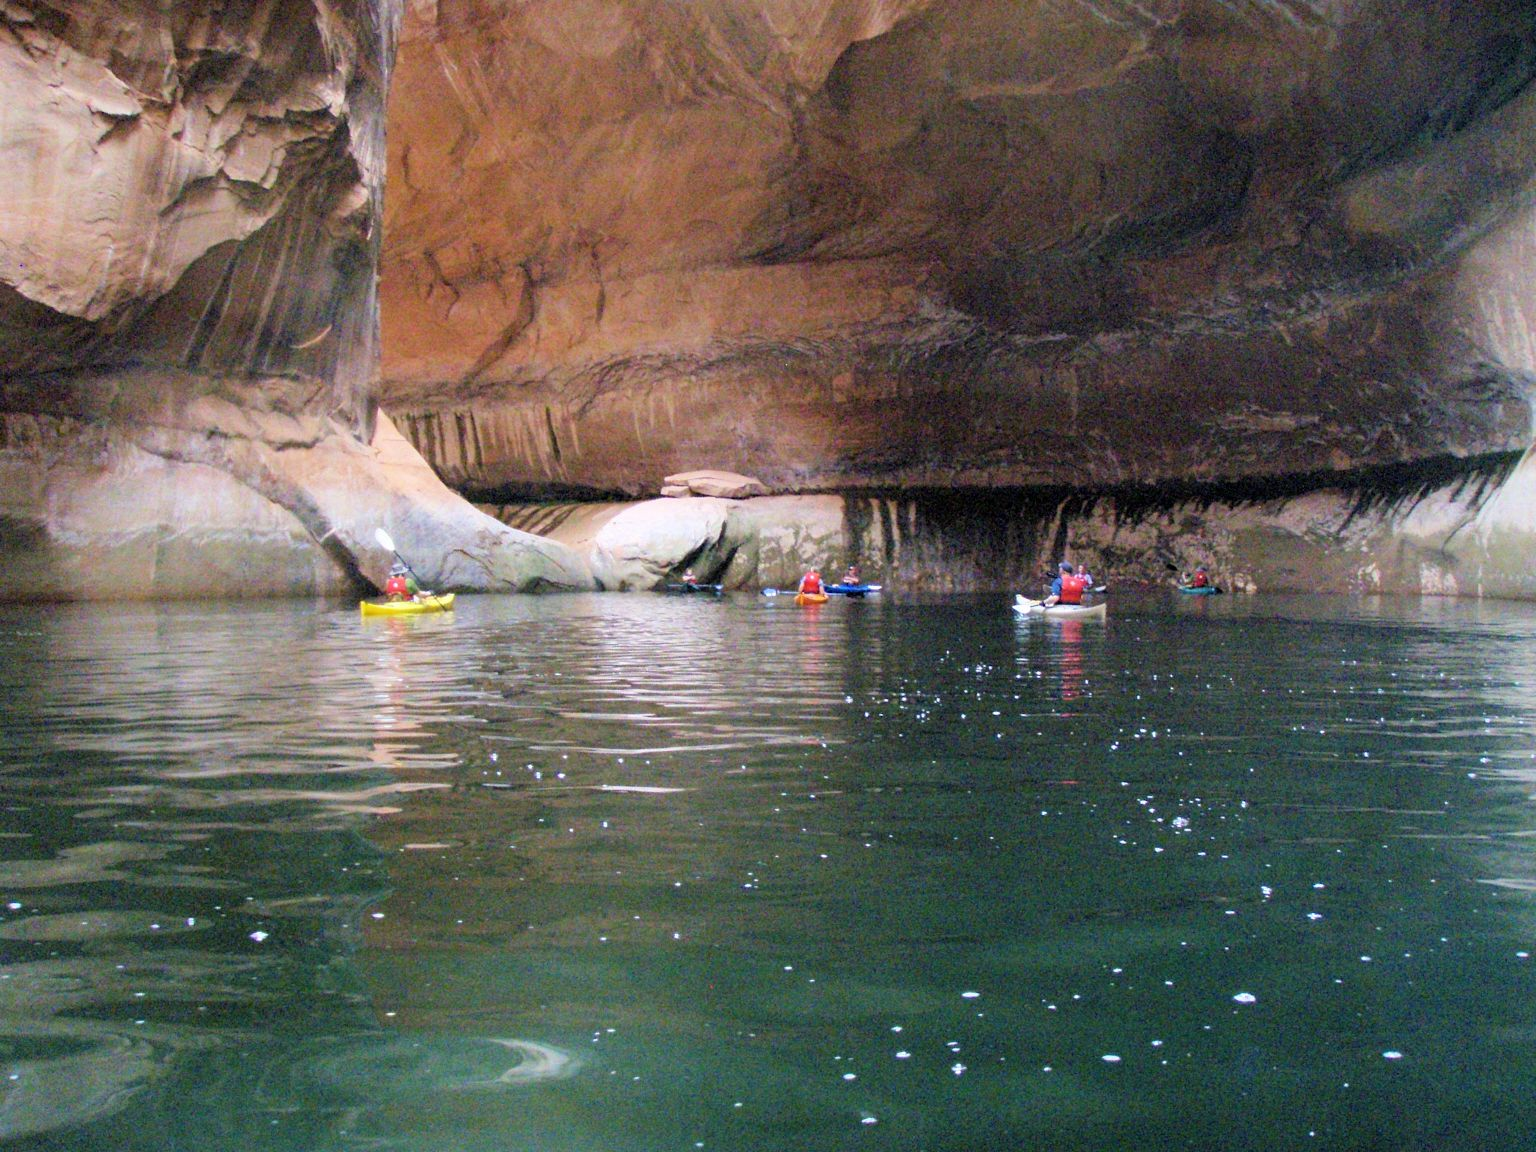 Kayaking into one of Lake Powell's many canyons